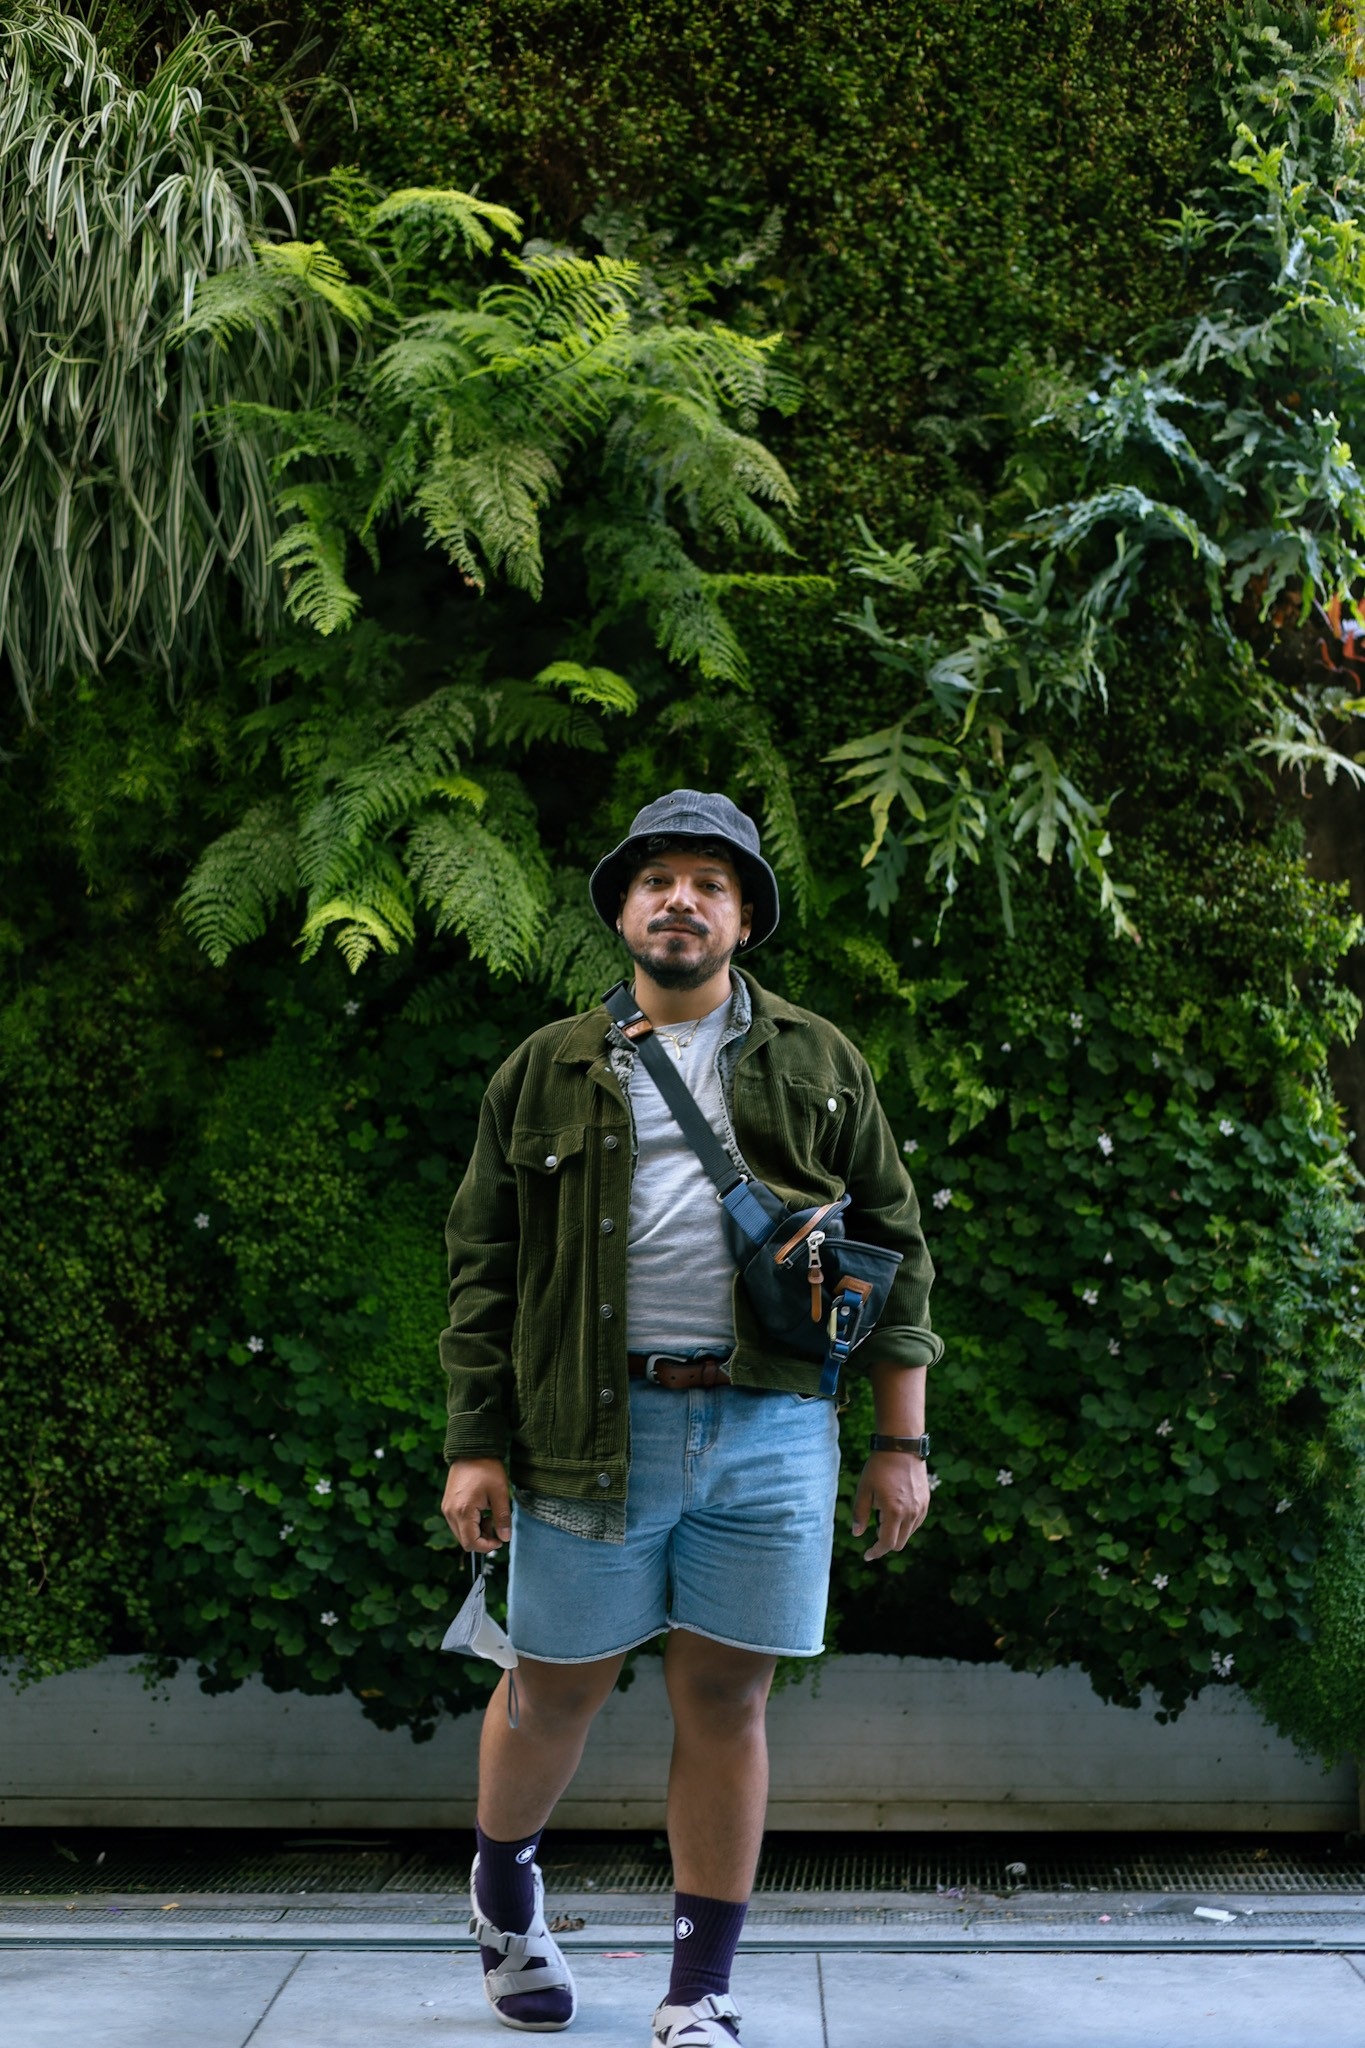 Cristóbal Guerra stands in front of a wall of verdant foliage, looking into the camera, wearing a blue bucket hat